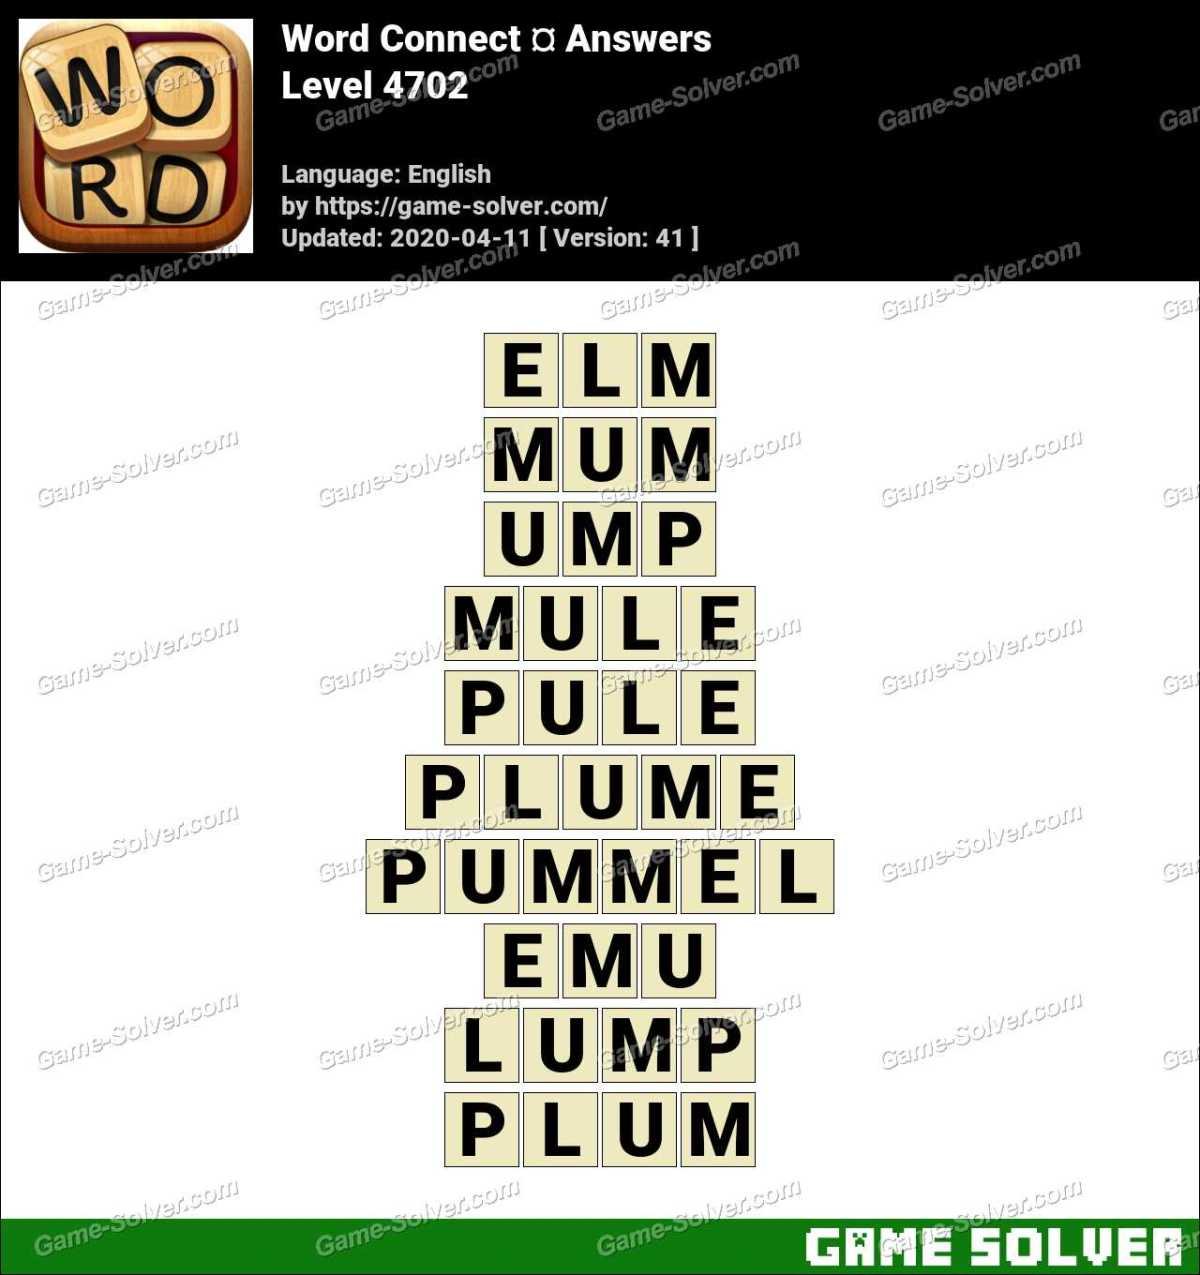 Word Connect Level 4702 Answers